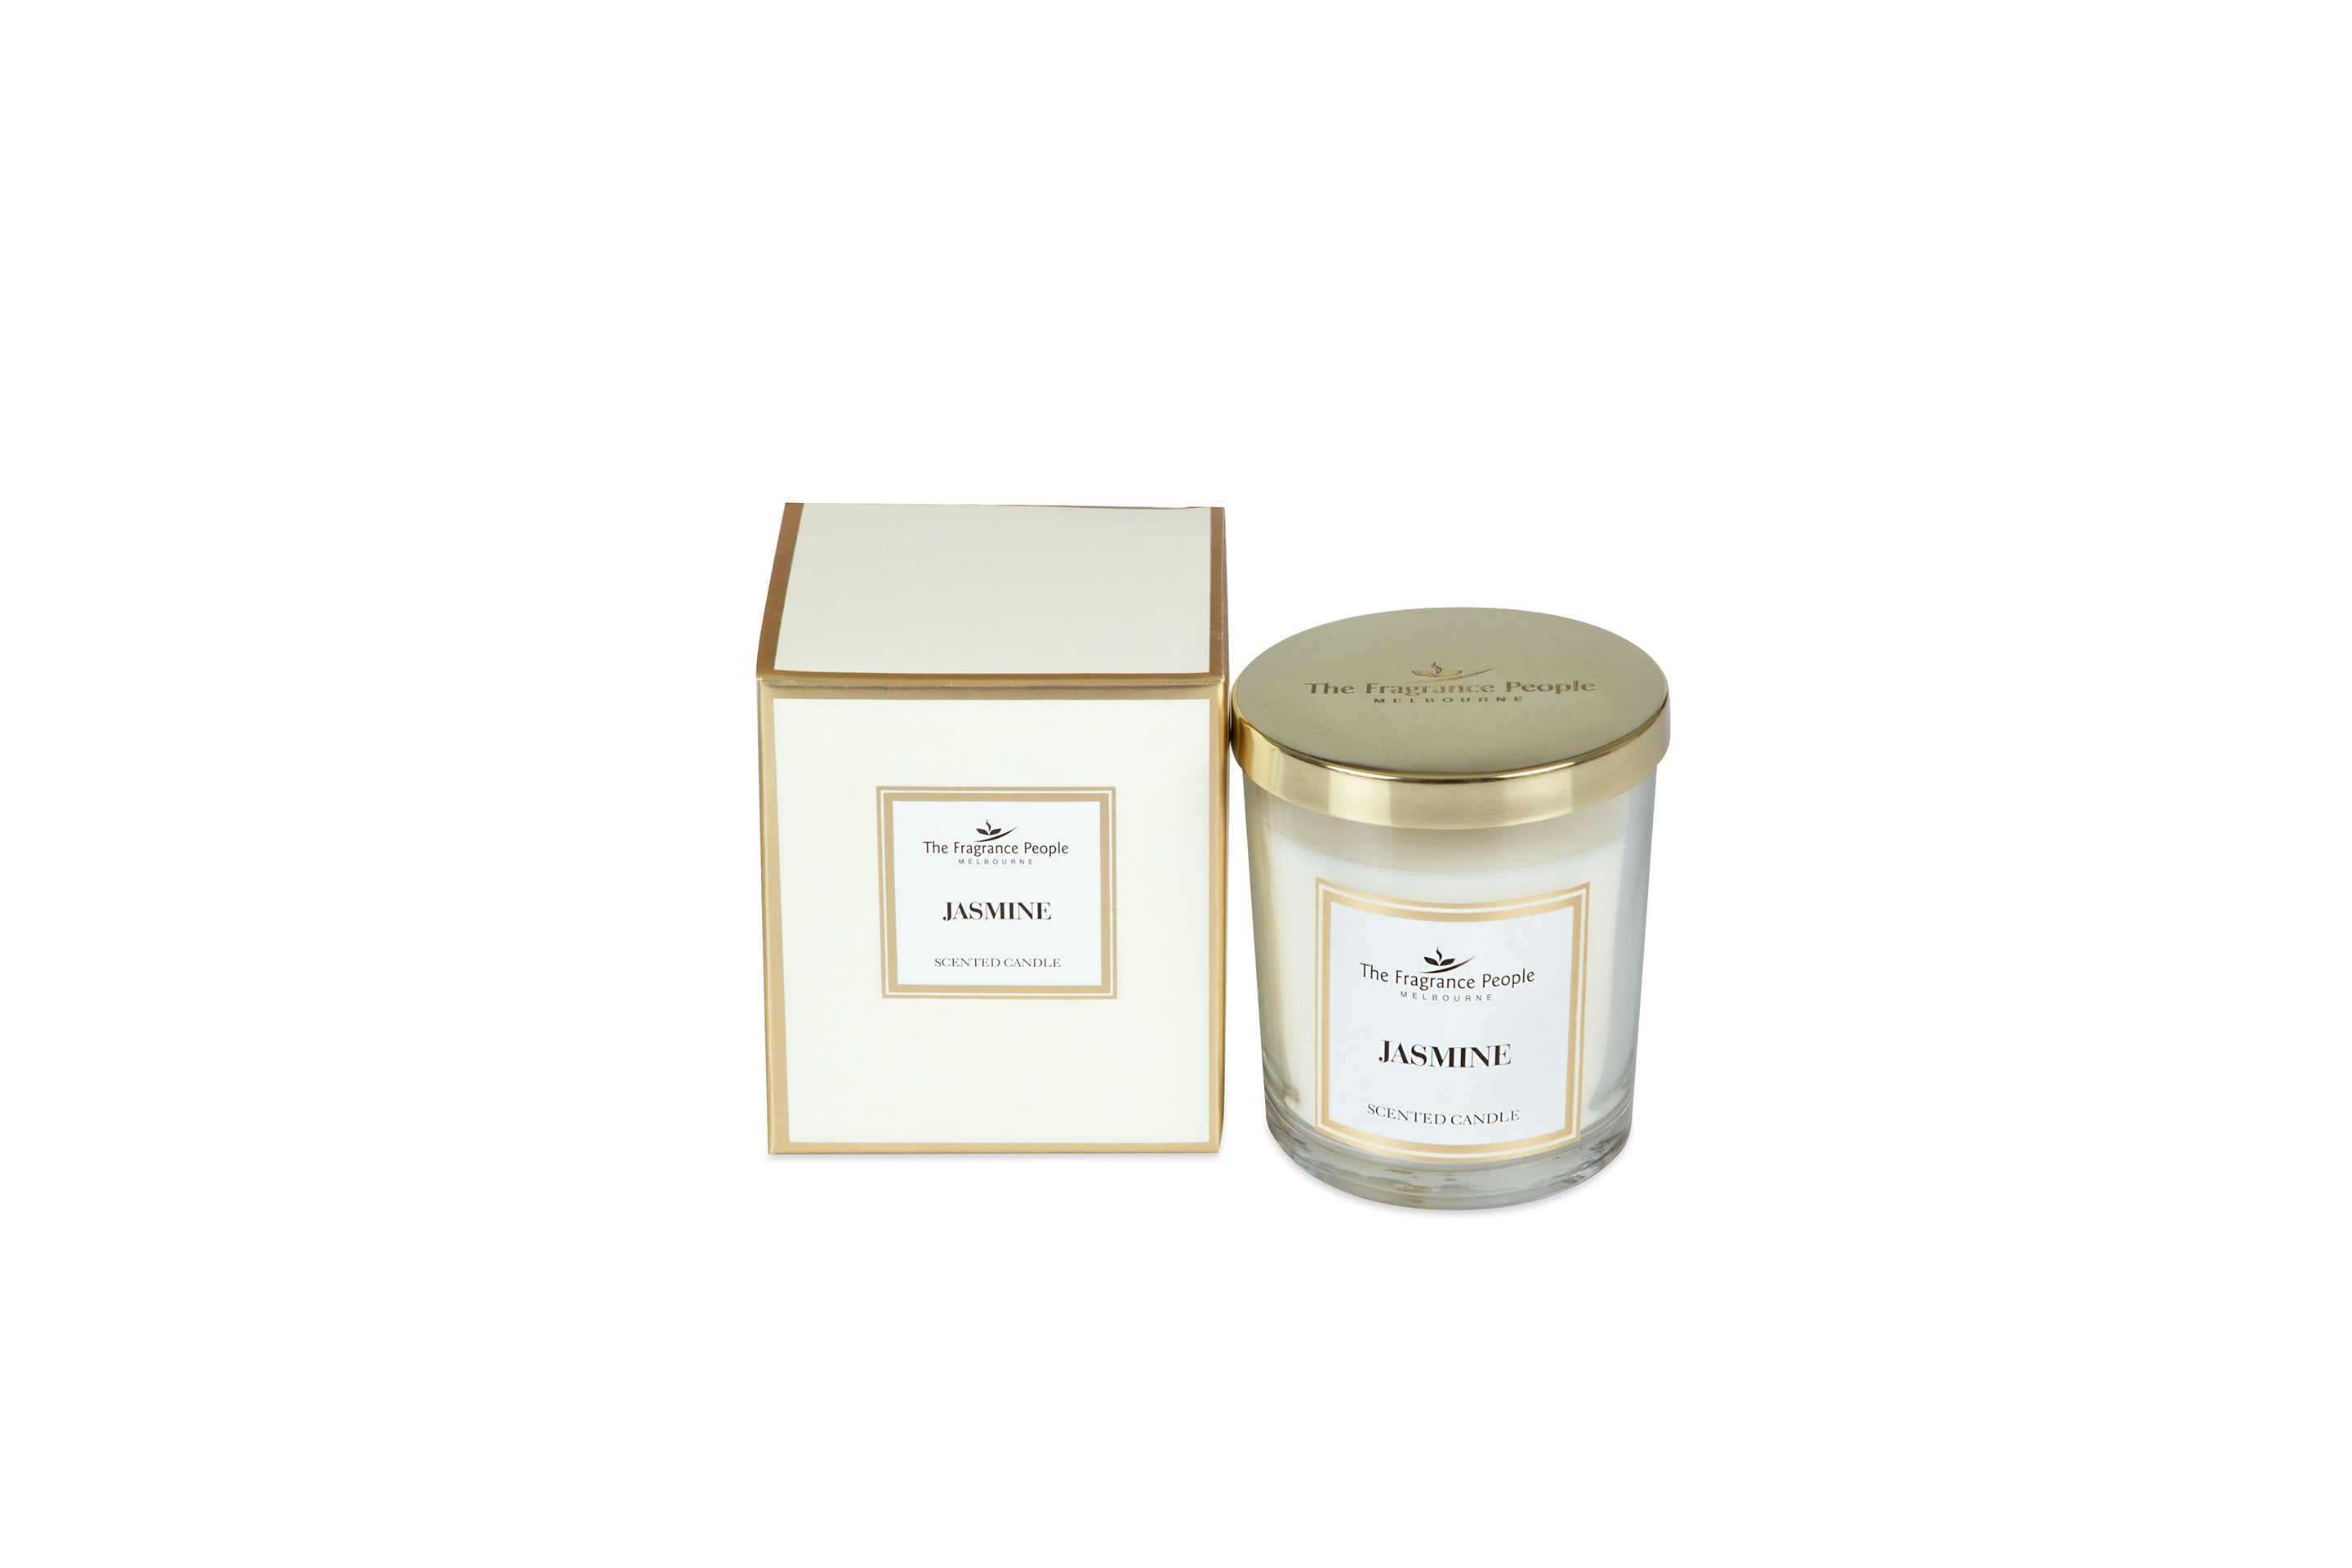 Luxury Scented Candle Jasmine - The Fragrance People